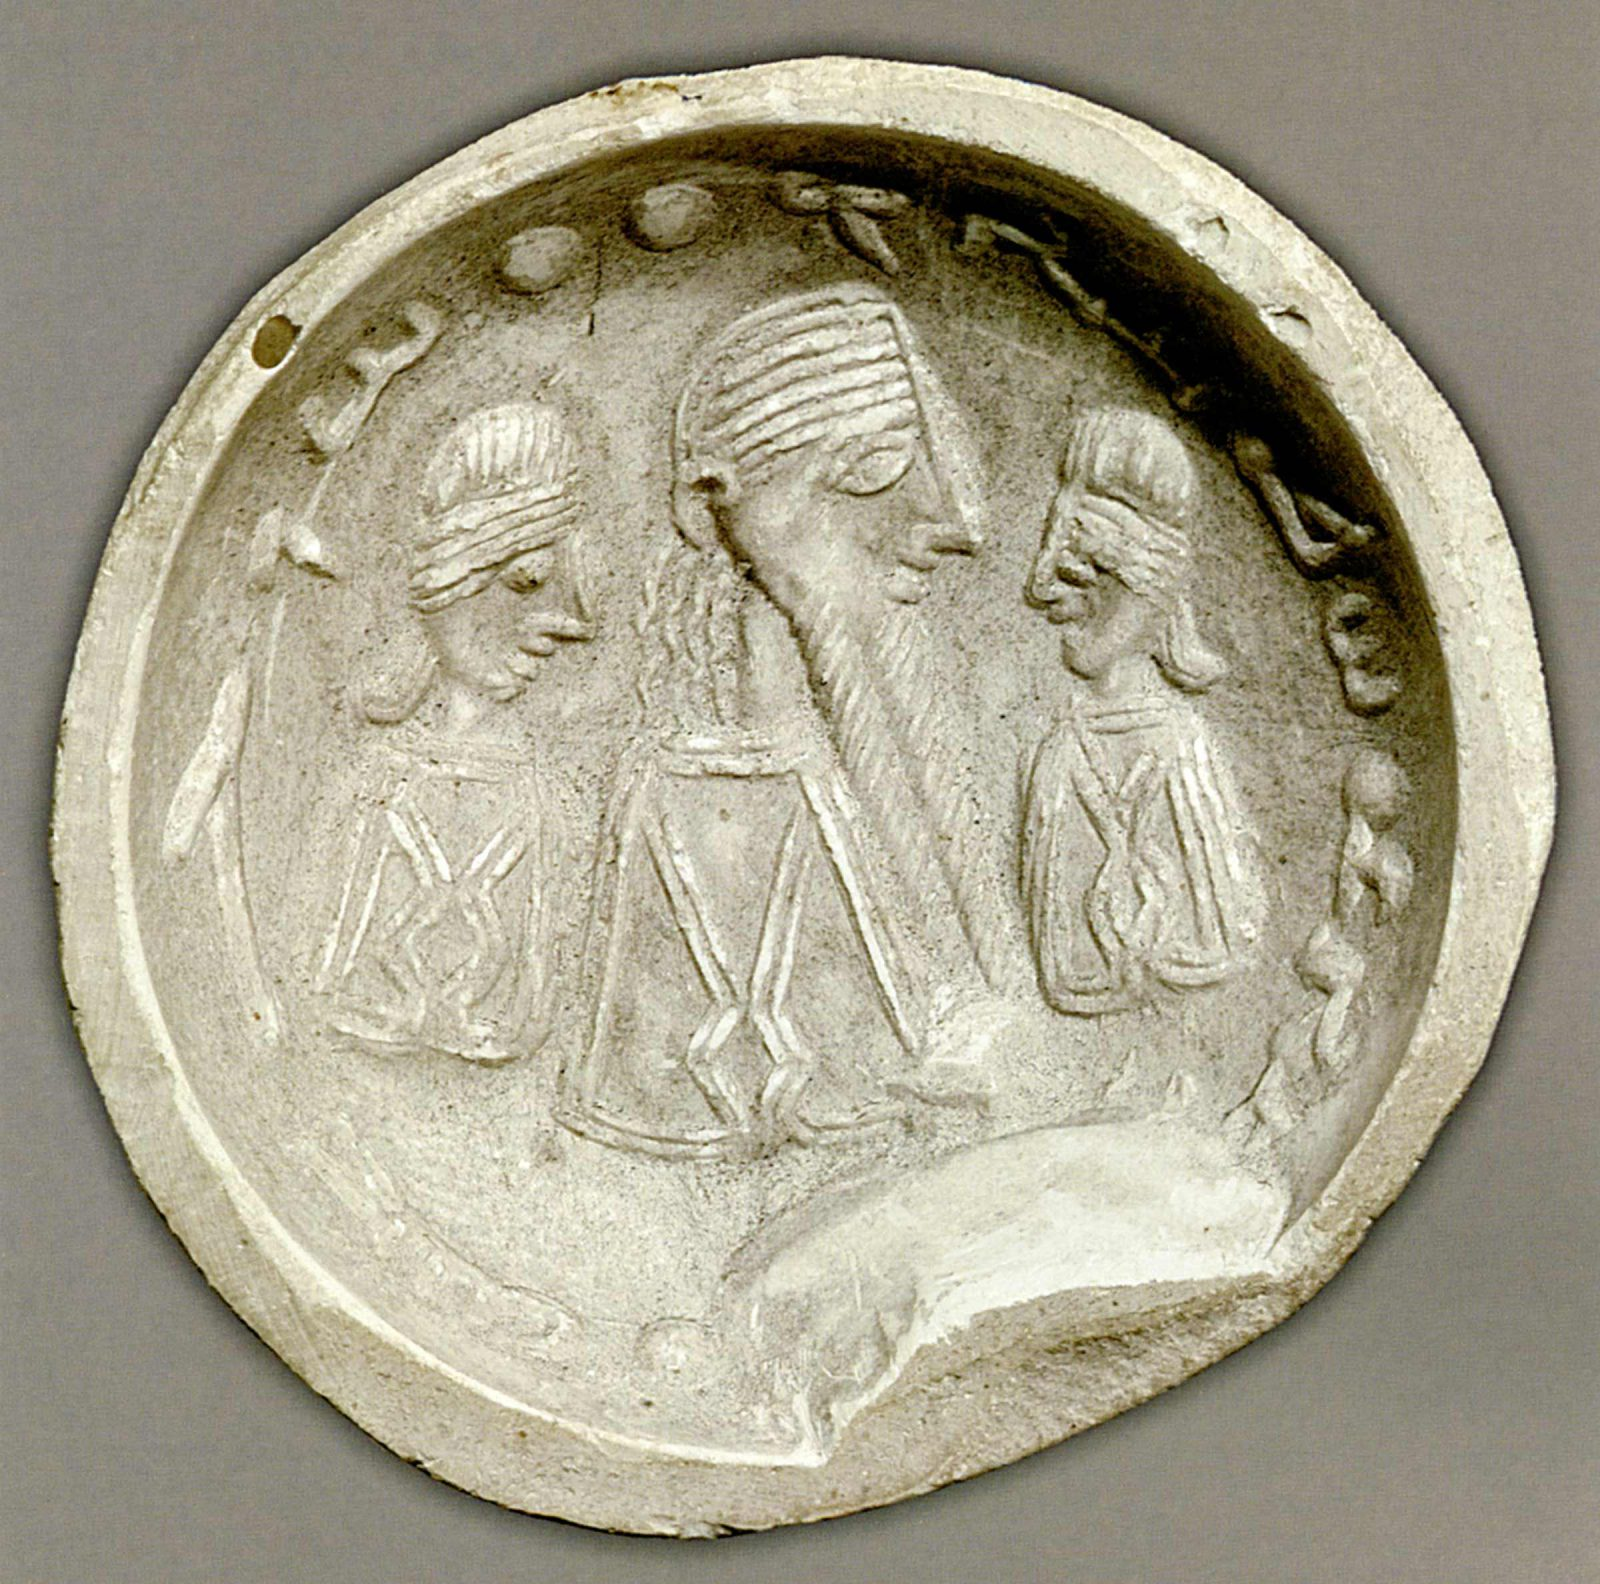 Three figures in profile under an inscription in circular impression of seal